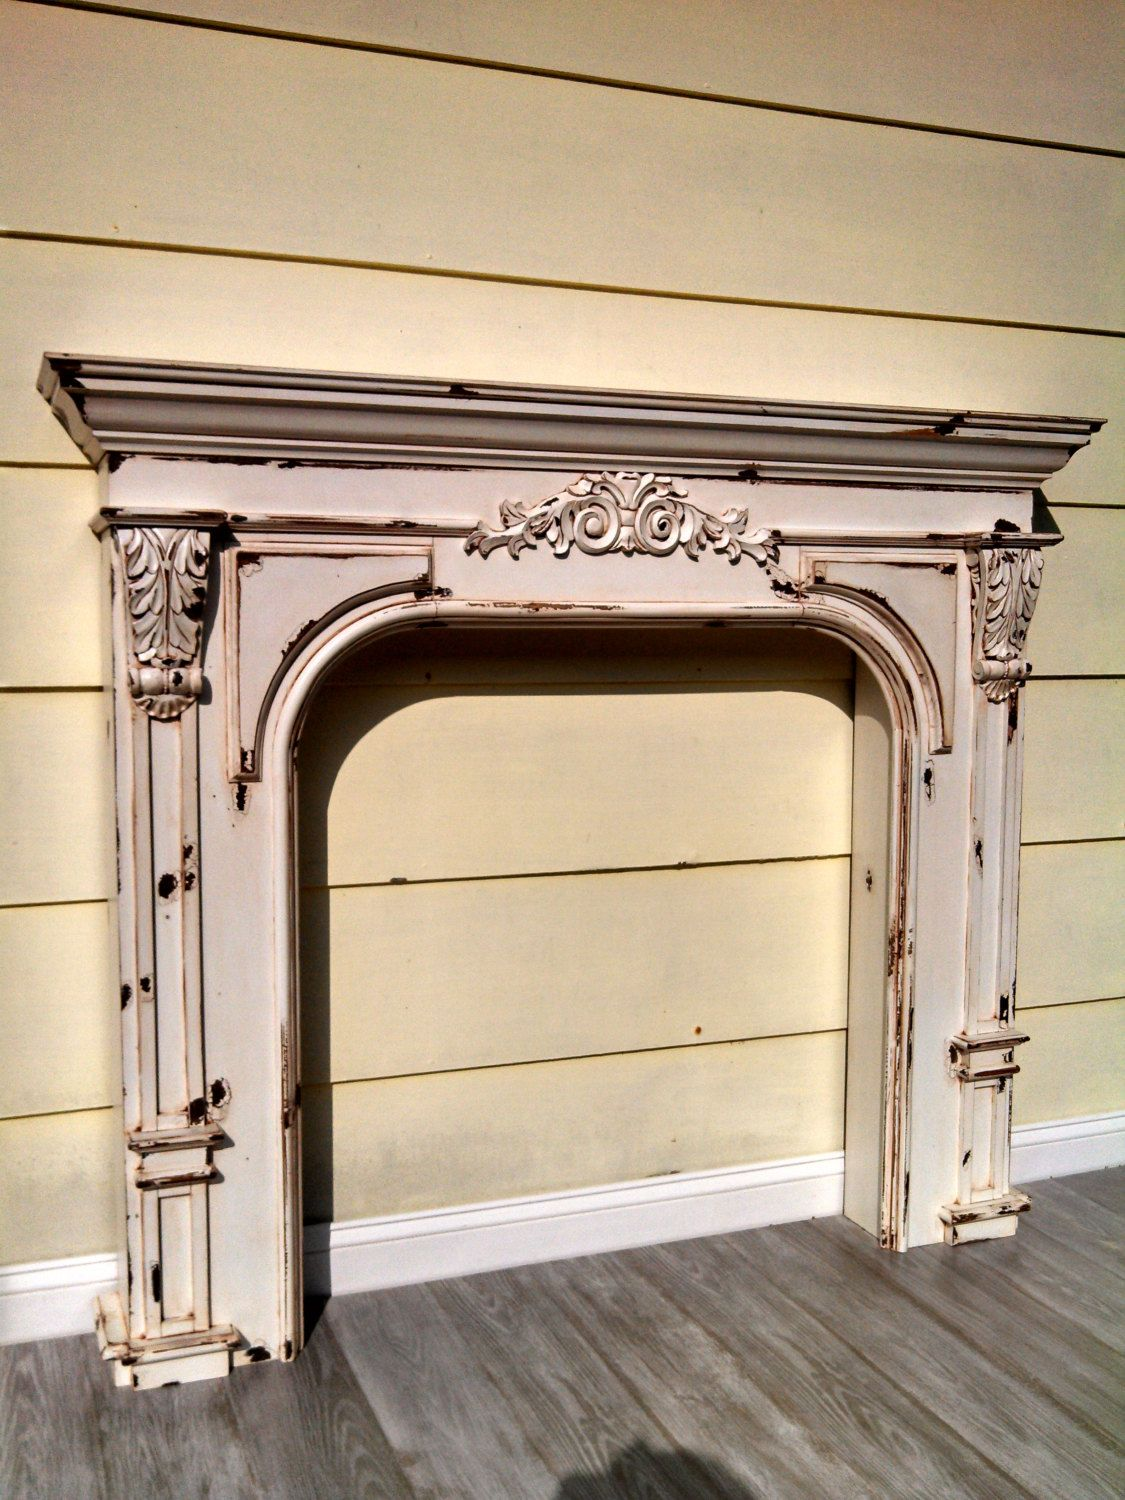 Vintage French Country Farmhouse Fireplace Mantel Reproduction By  RedClayWoodworks On Etsy Https://www